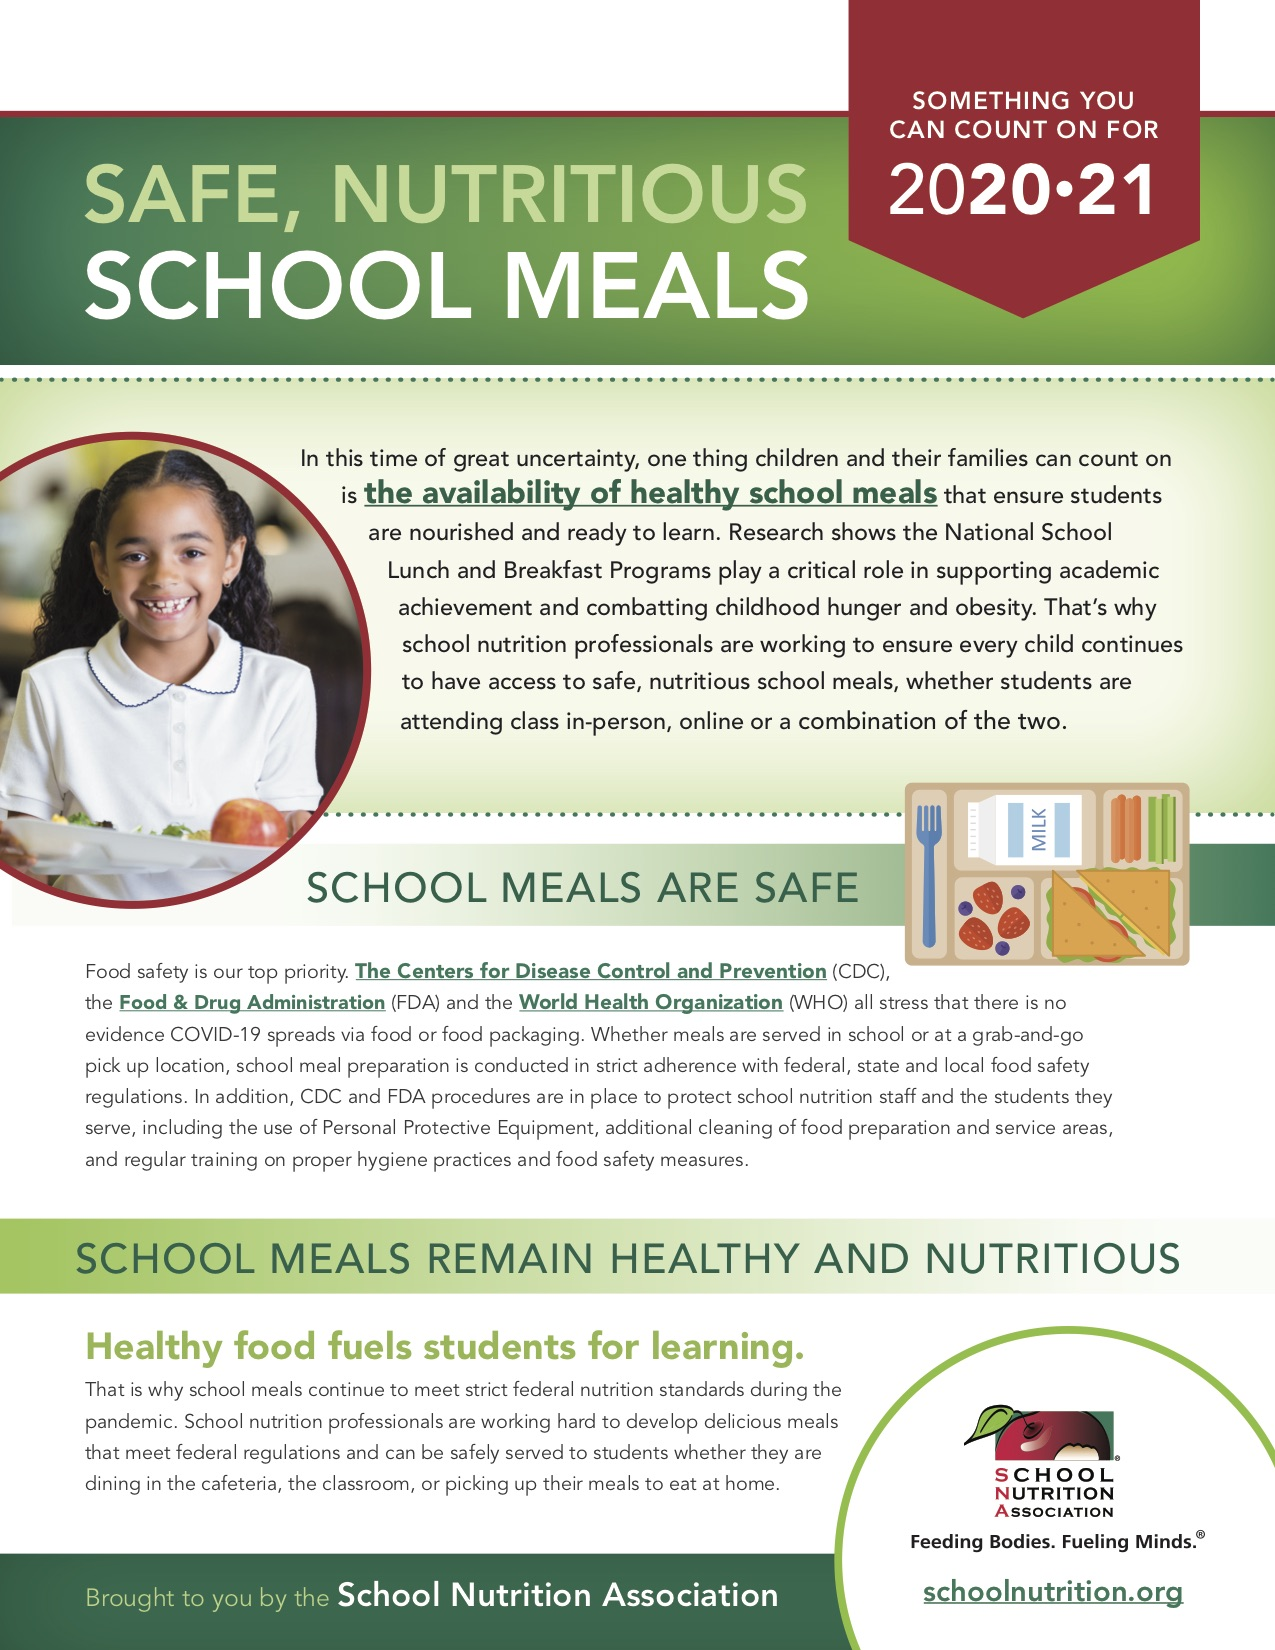 Safe Nutritious School Meals, Something you can count on for 2020-21